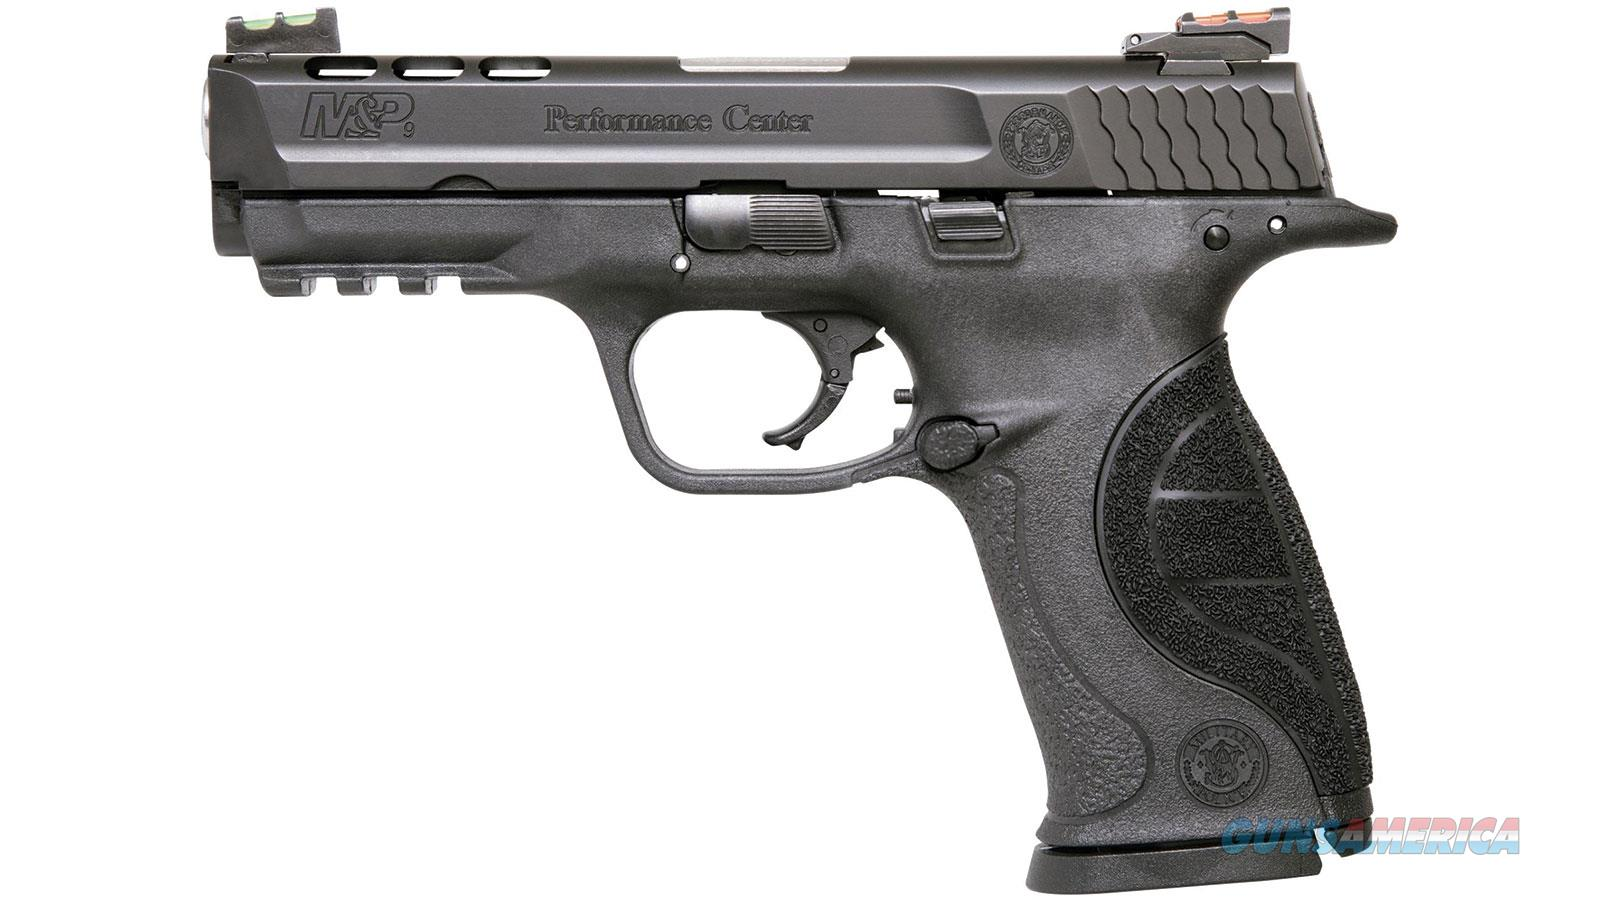 SMITH & WESSON M&P9 9MM 4.25 PORTED BLK POLY FOS 17RD 10217  Guns > Pistols > S Misc Pistols